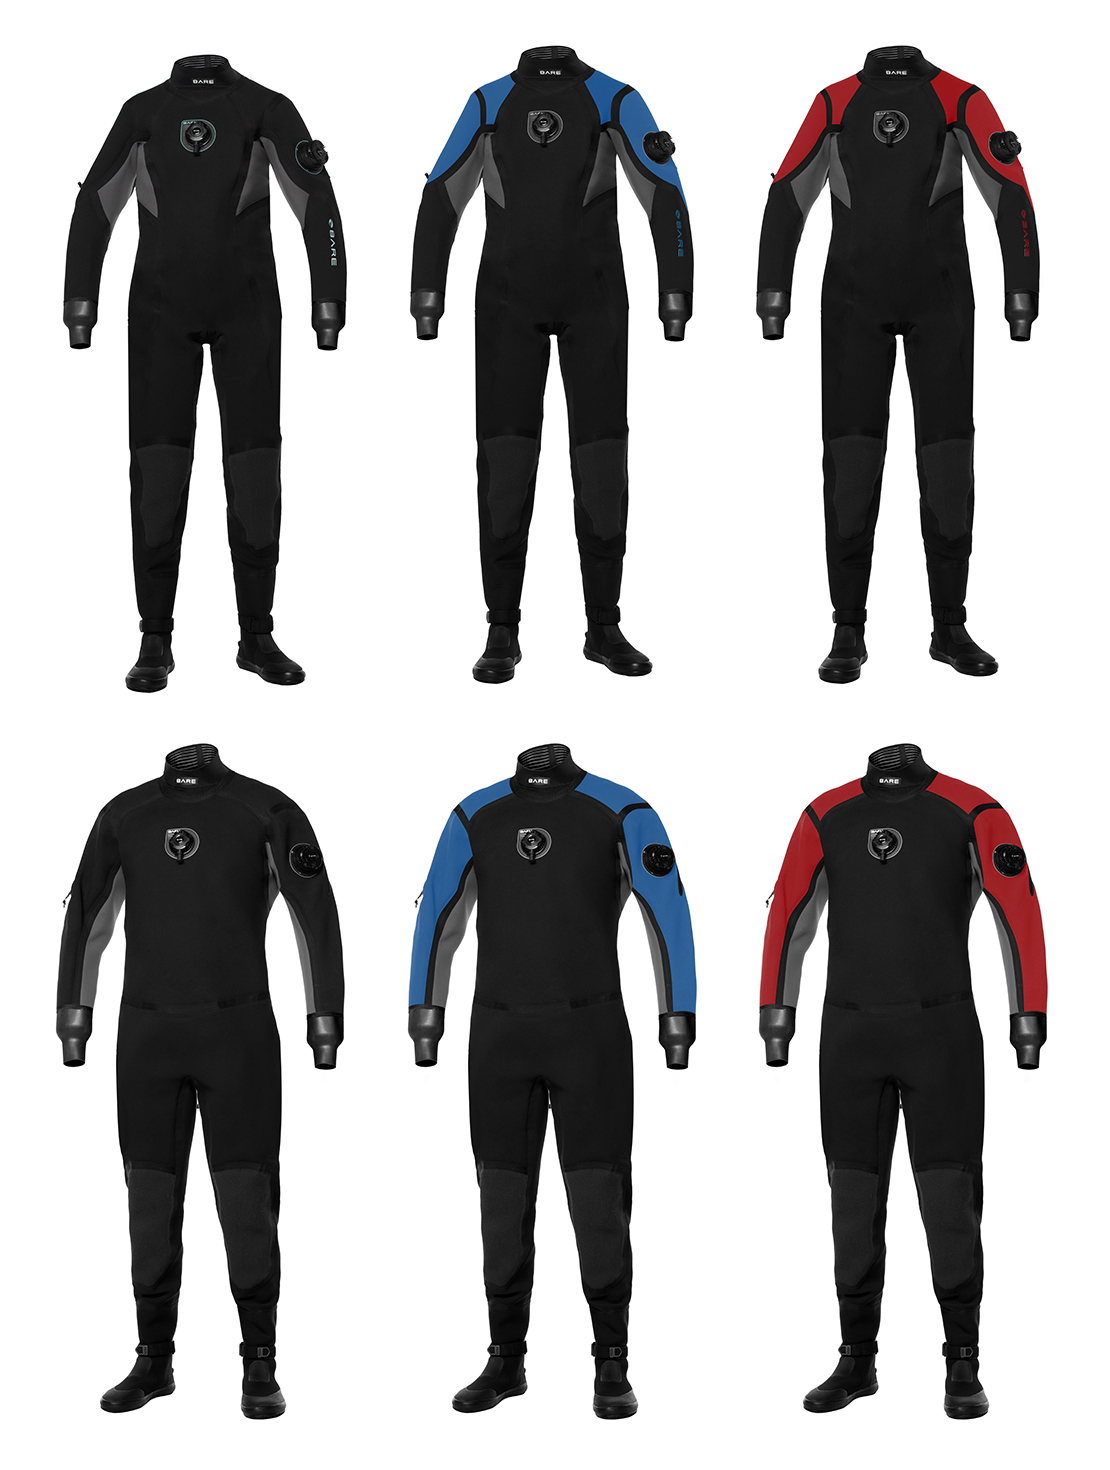 Bare's Latest and Greatest Drysuit to Date